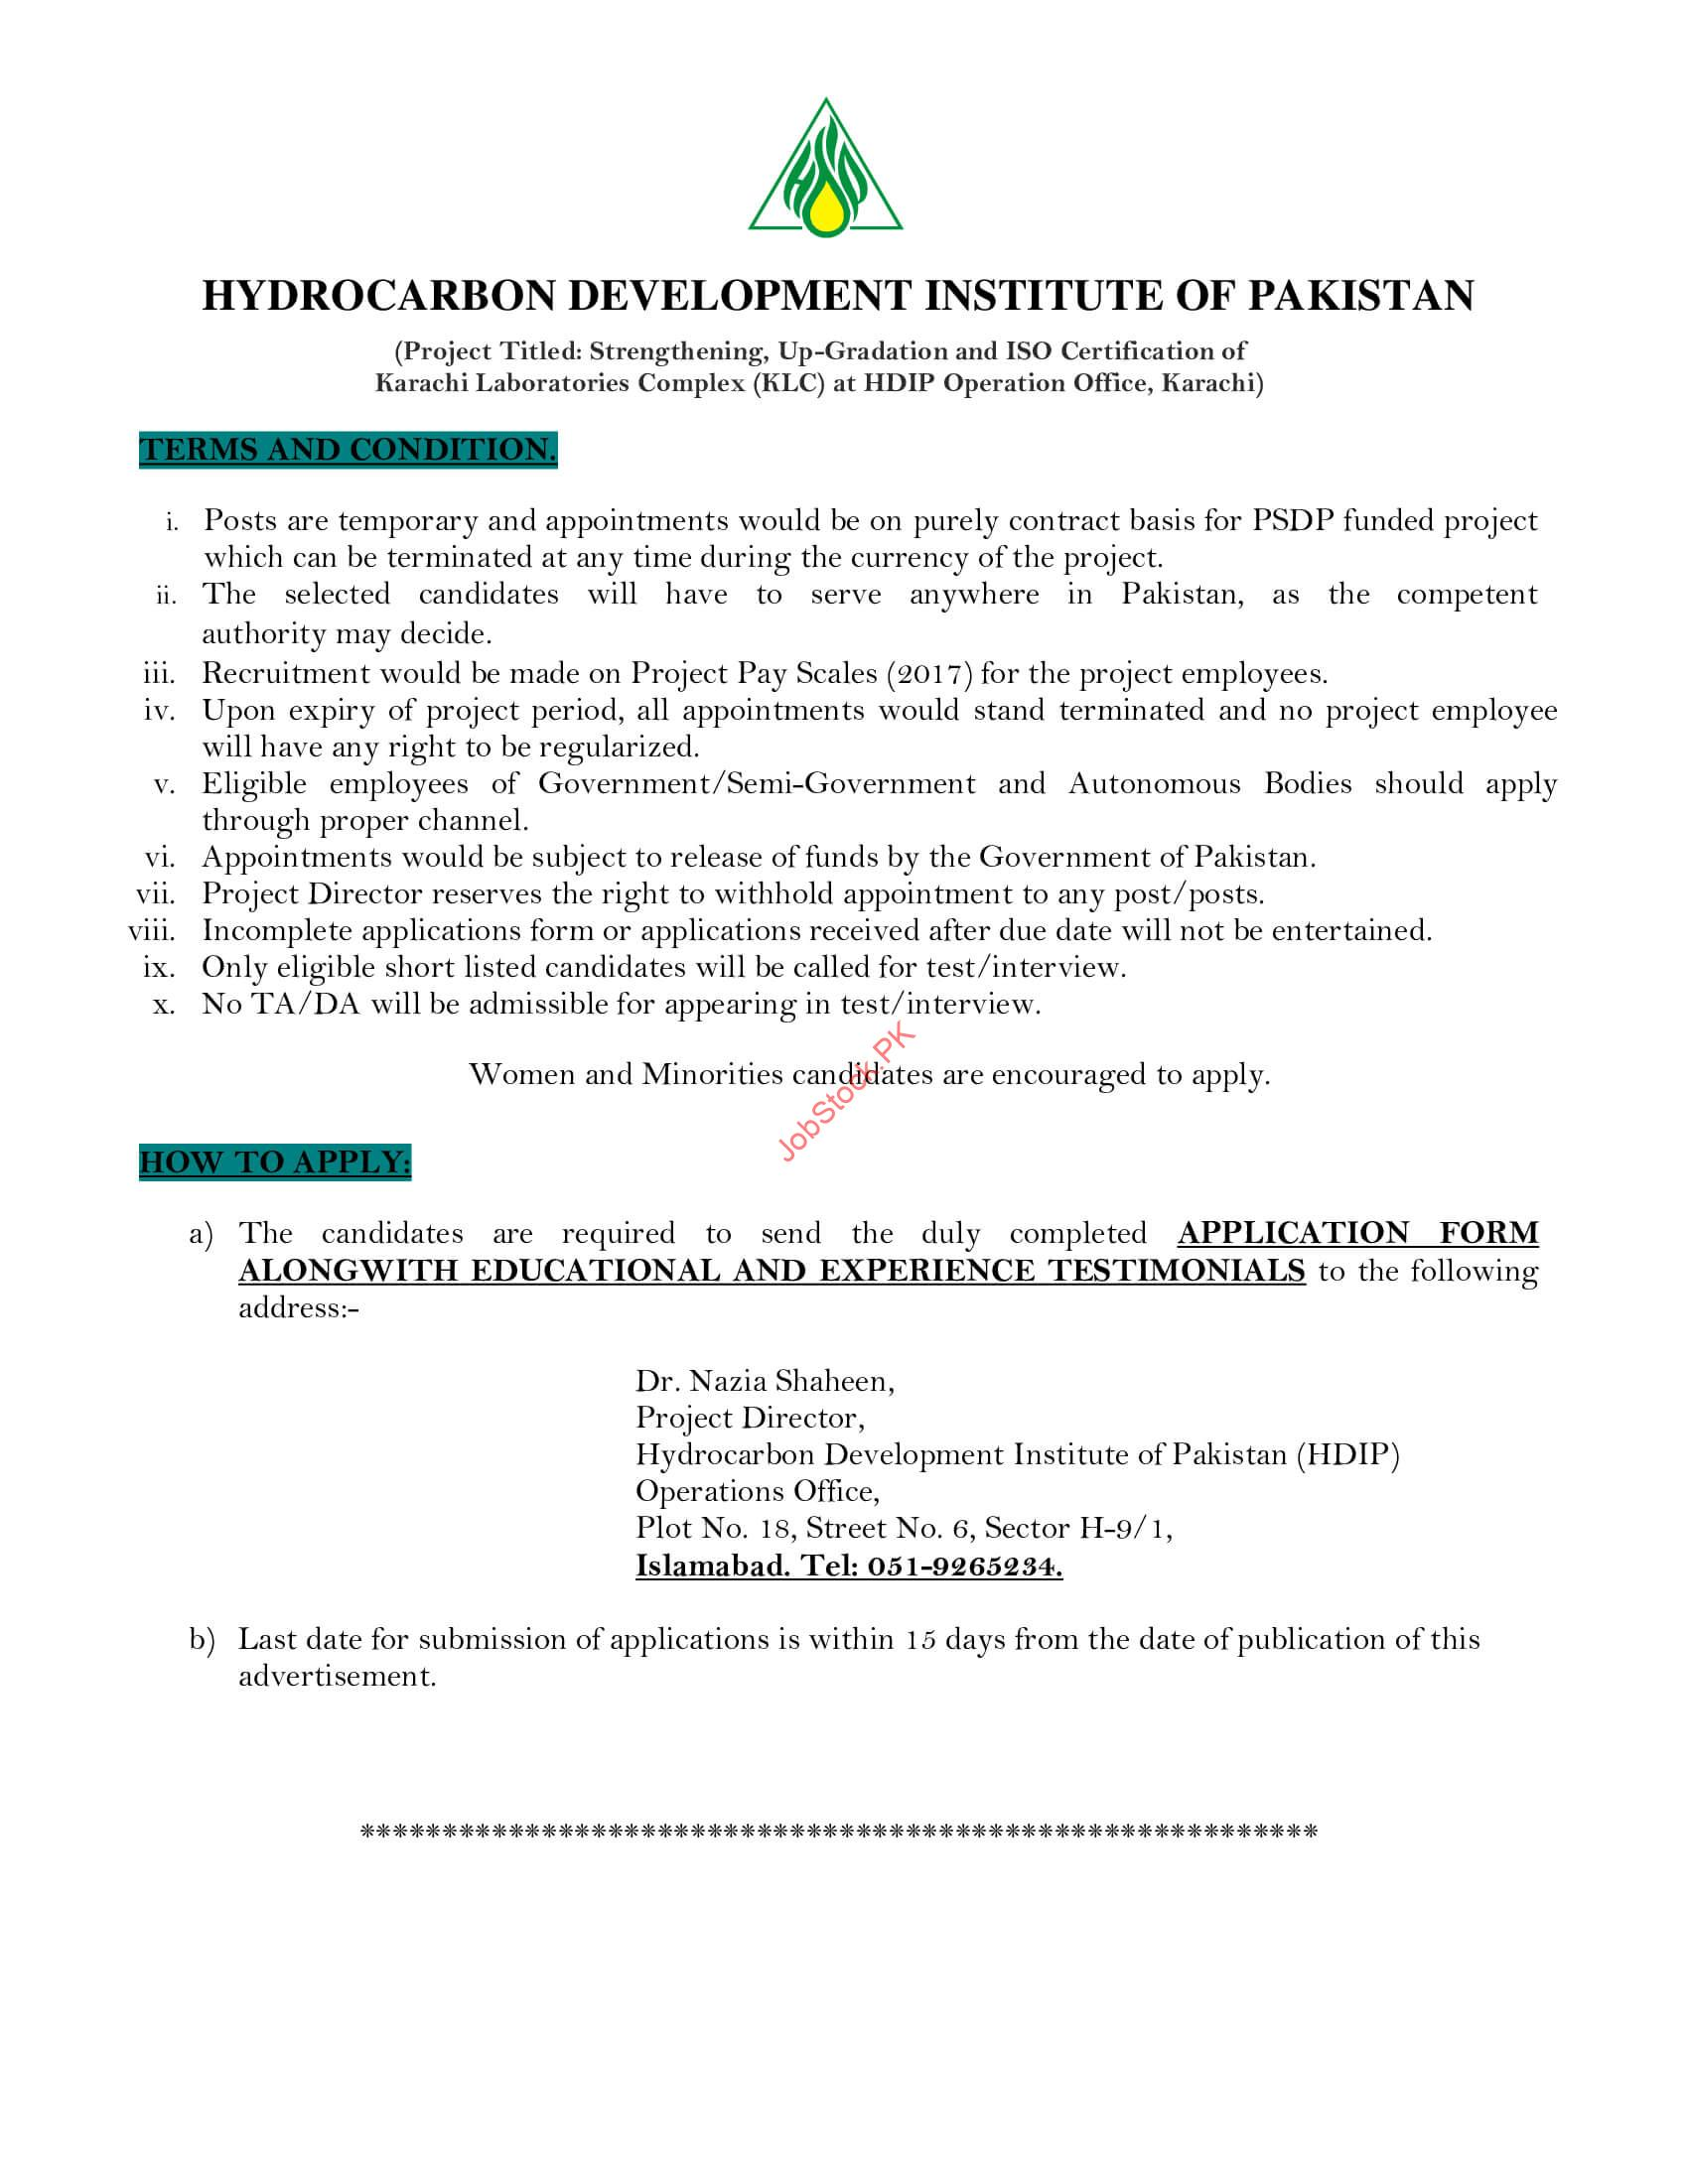 Hdip Application Form Page 2